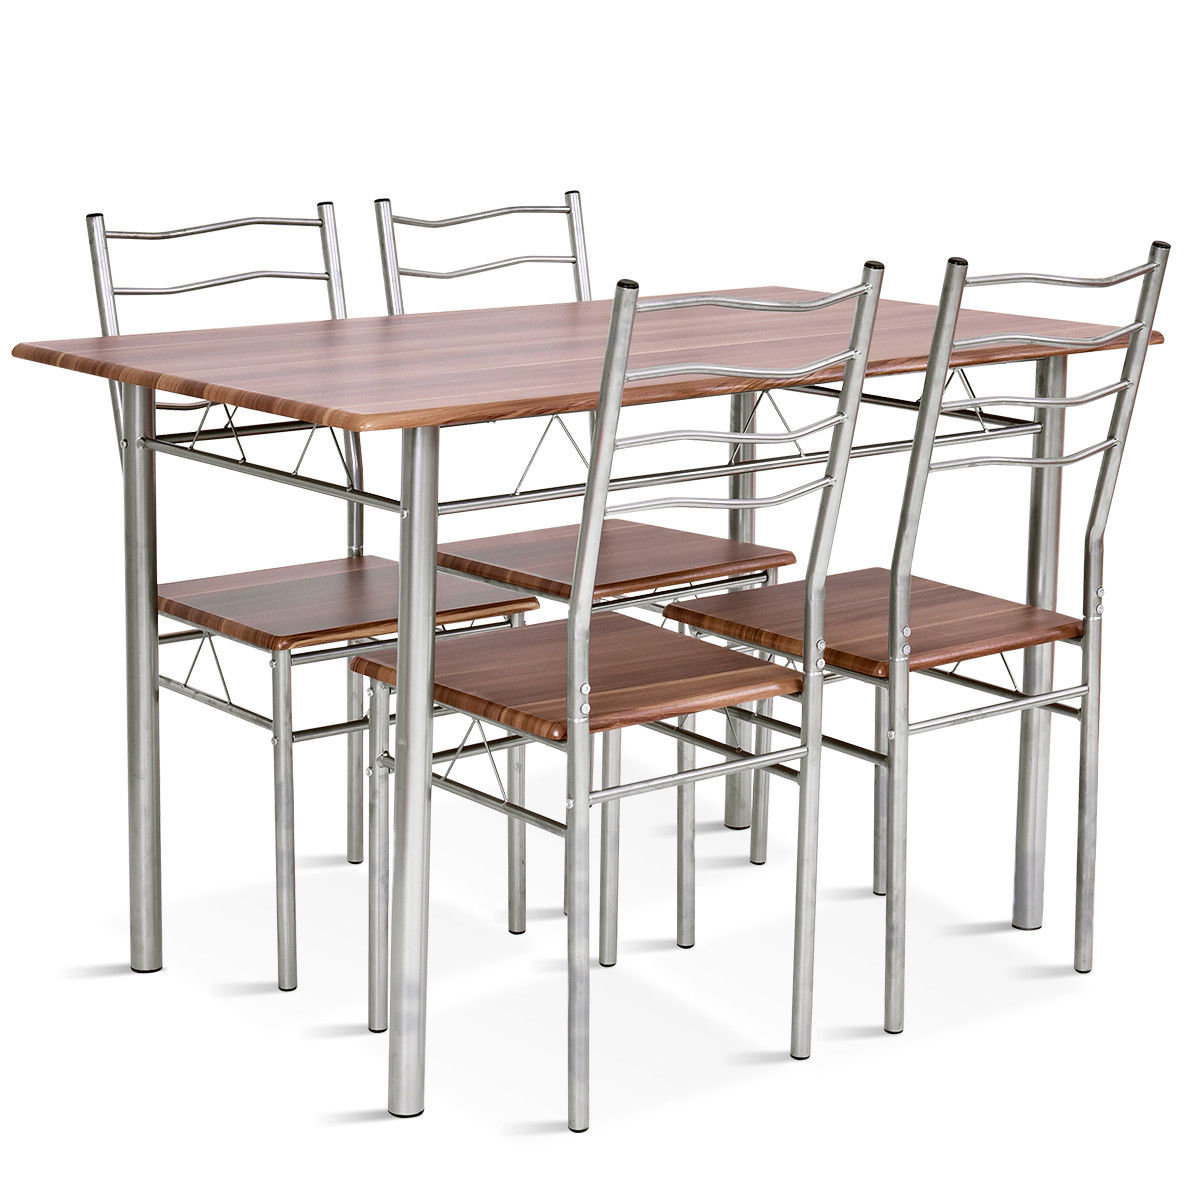 Wayfair With Regard To Fashionable Kieffer 5 Piece Dining Sets (View 10 of 25)